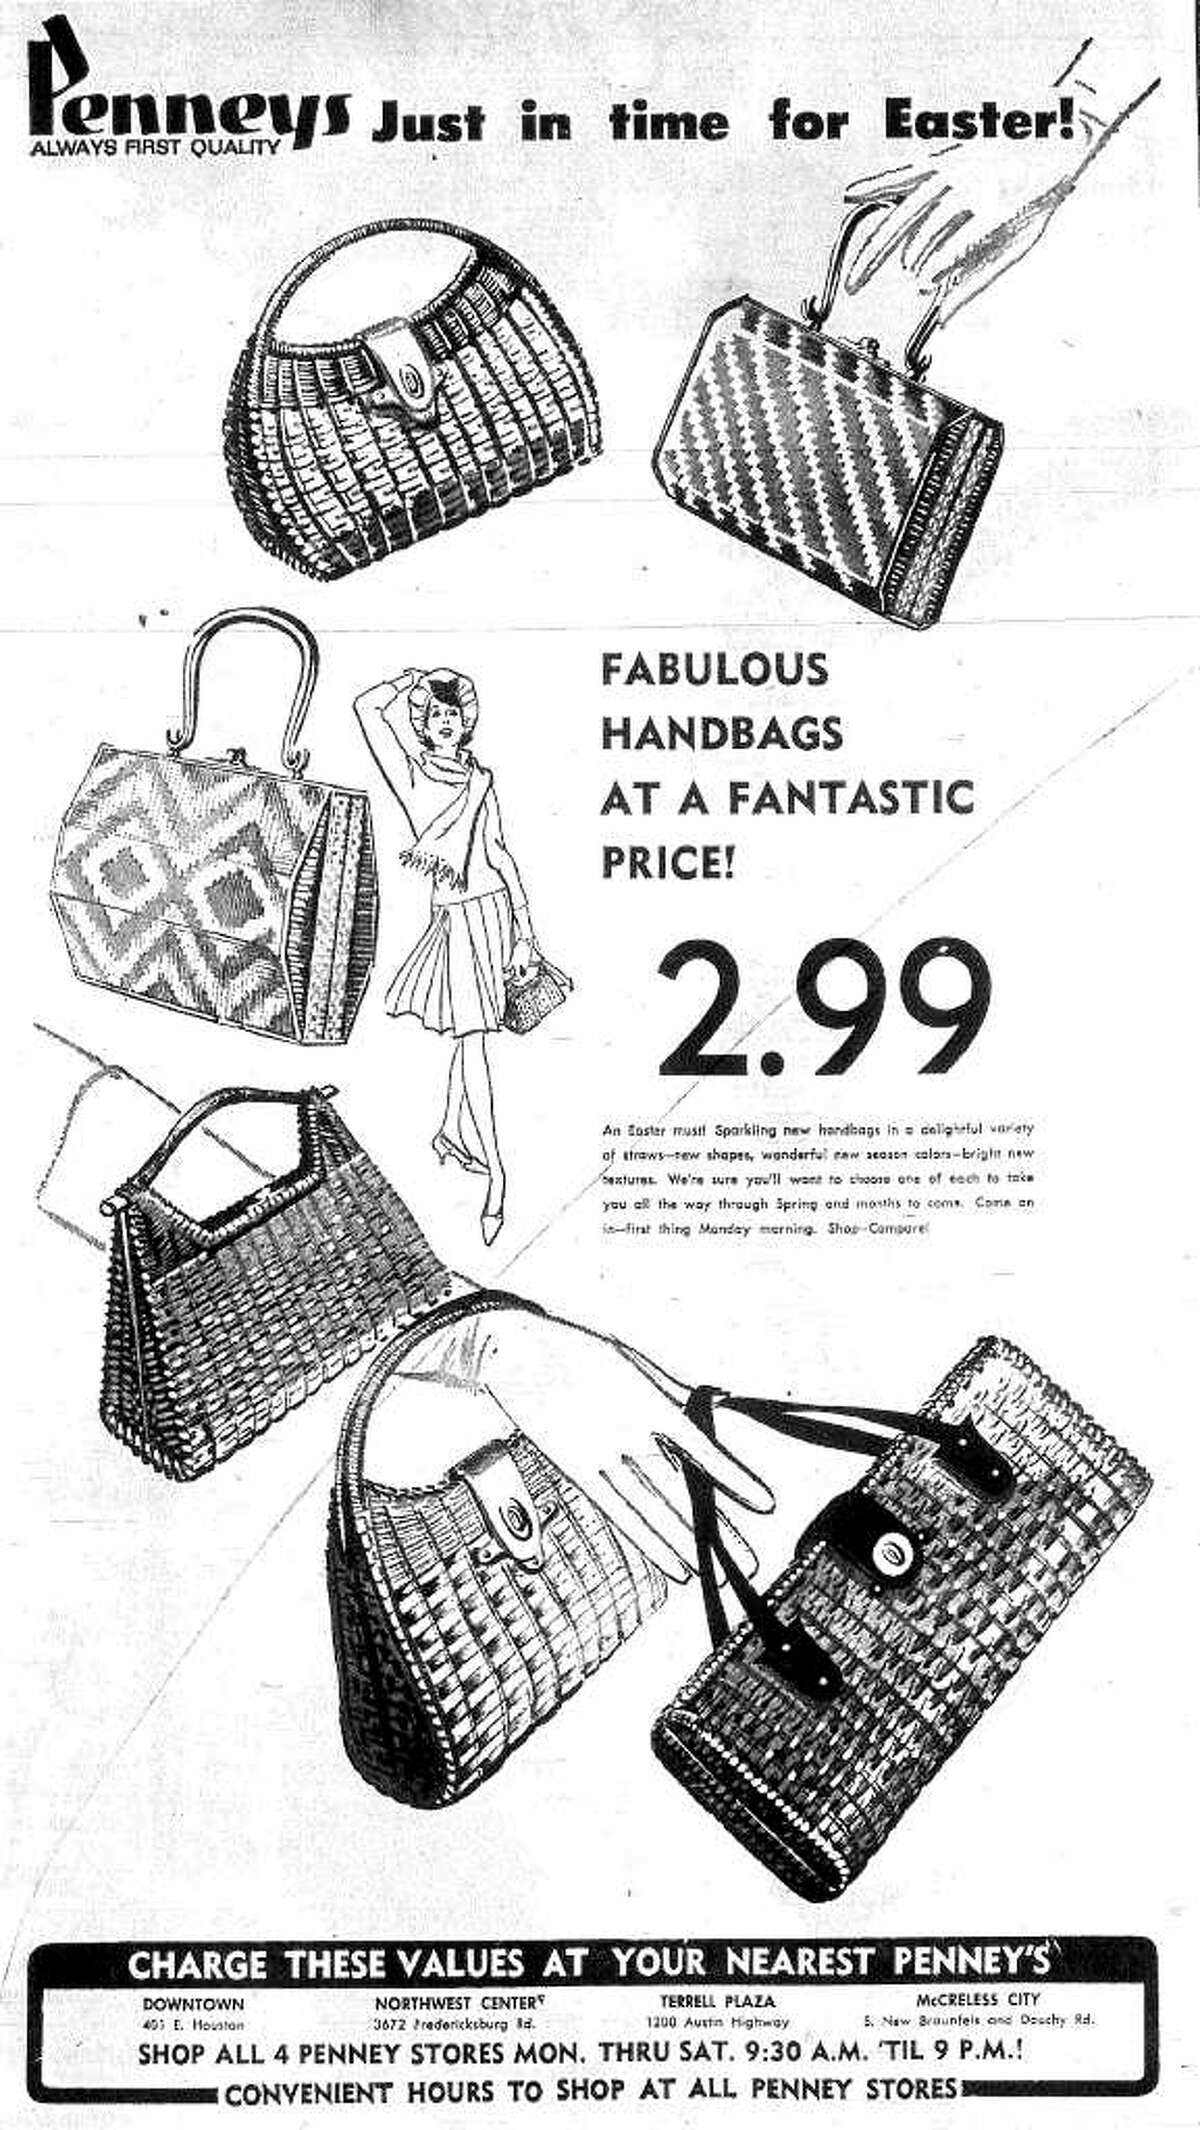 Those $2.99 bags would cost $19.87 in 2010 dollars - a bargain in any decade.